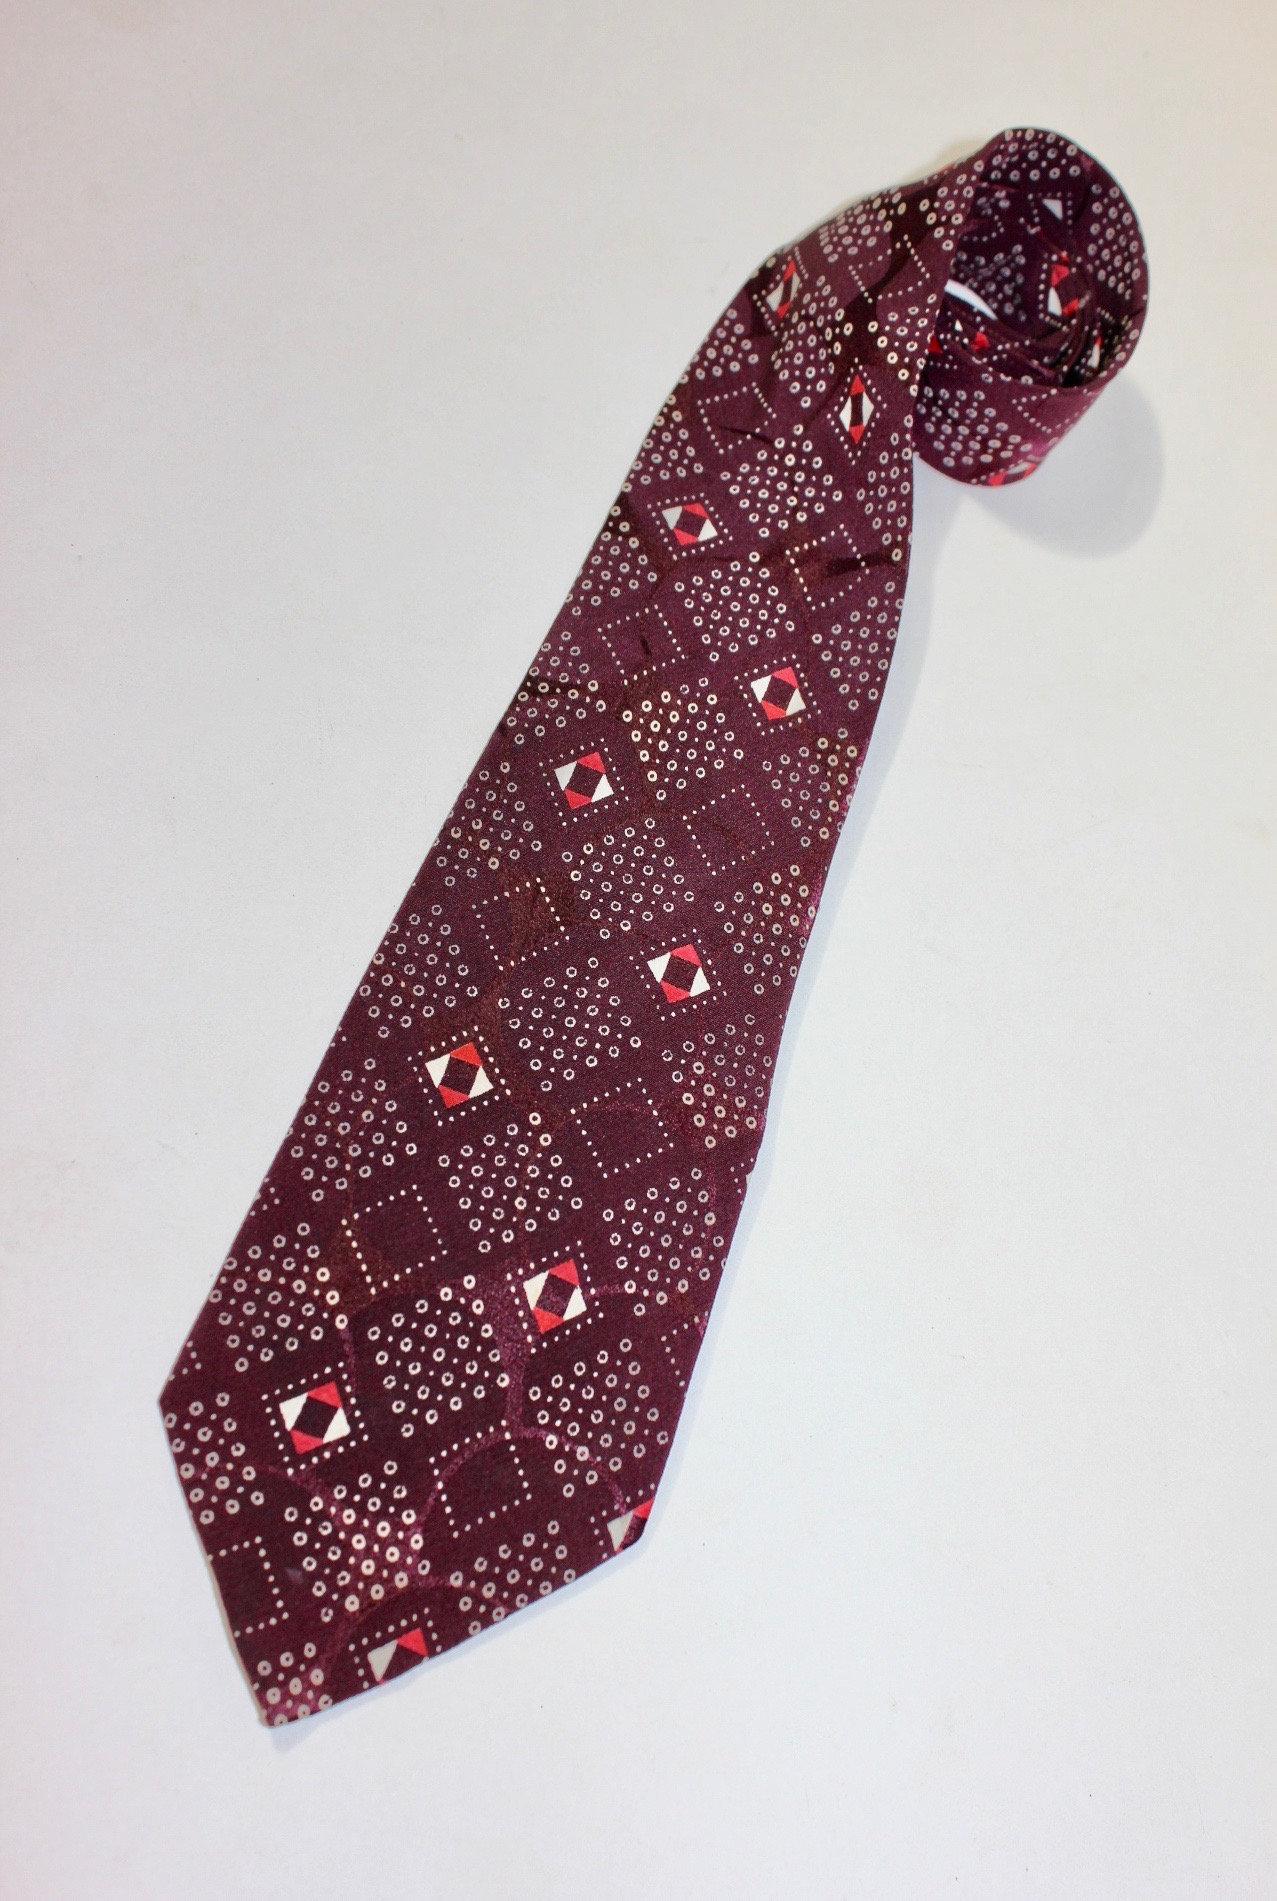 New 1930s Mens Fashion Ties Vintage 1930s -Sulka - Mens 4 Fold Neck Tie. Burgundy with Red  White Geometric Harlequien Design. Circular Ghost Pattern. 3 38 Wide $6.50 AT vintagedancer.com